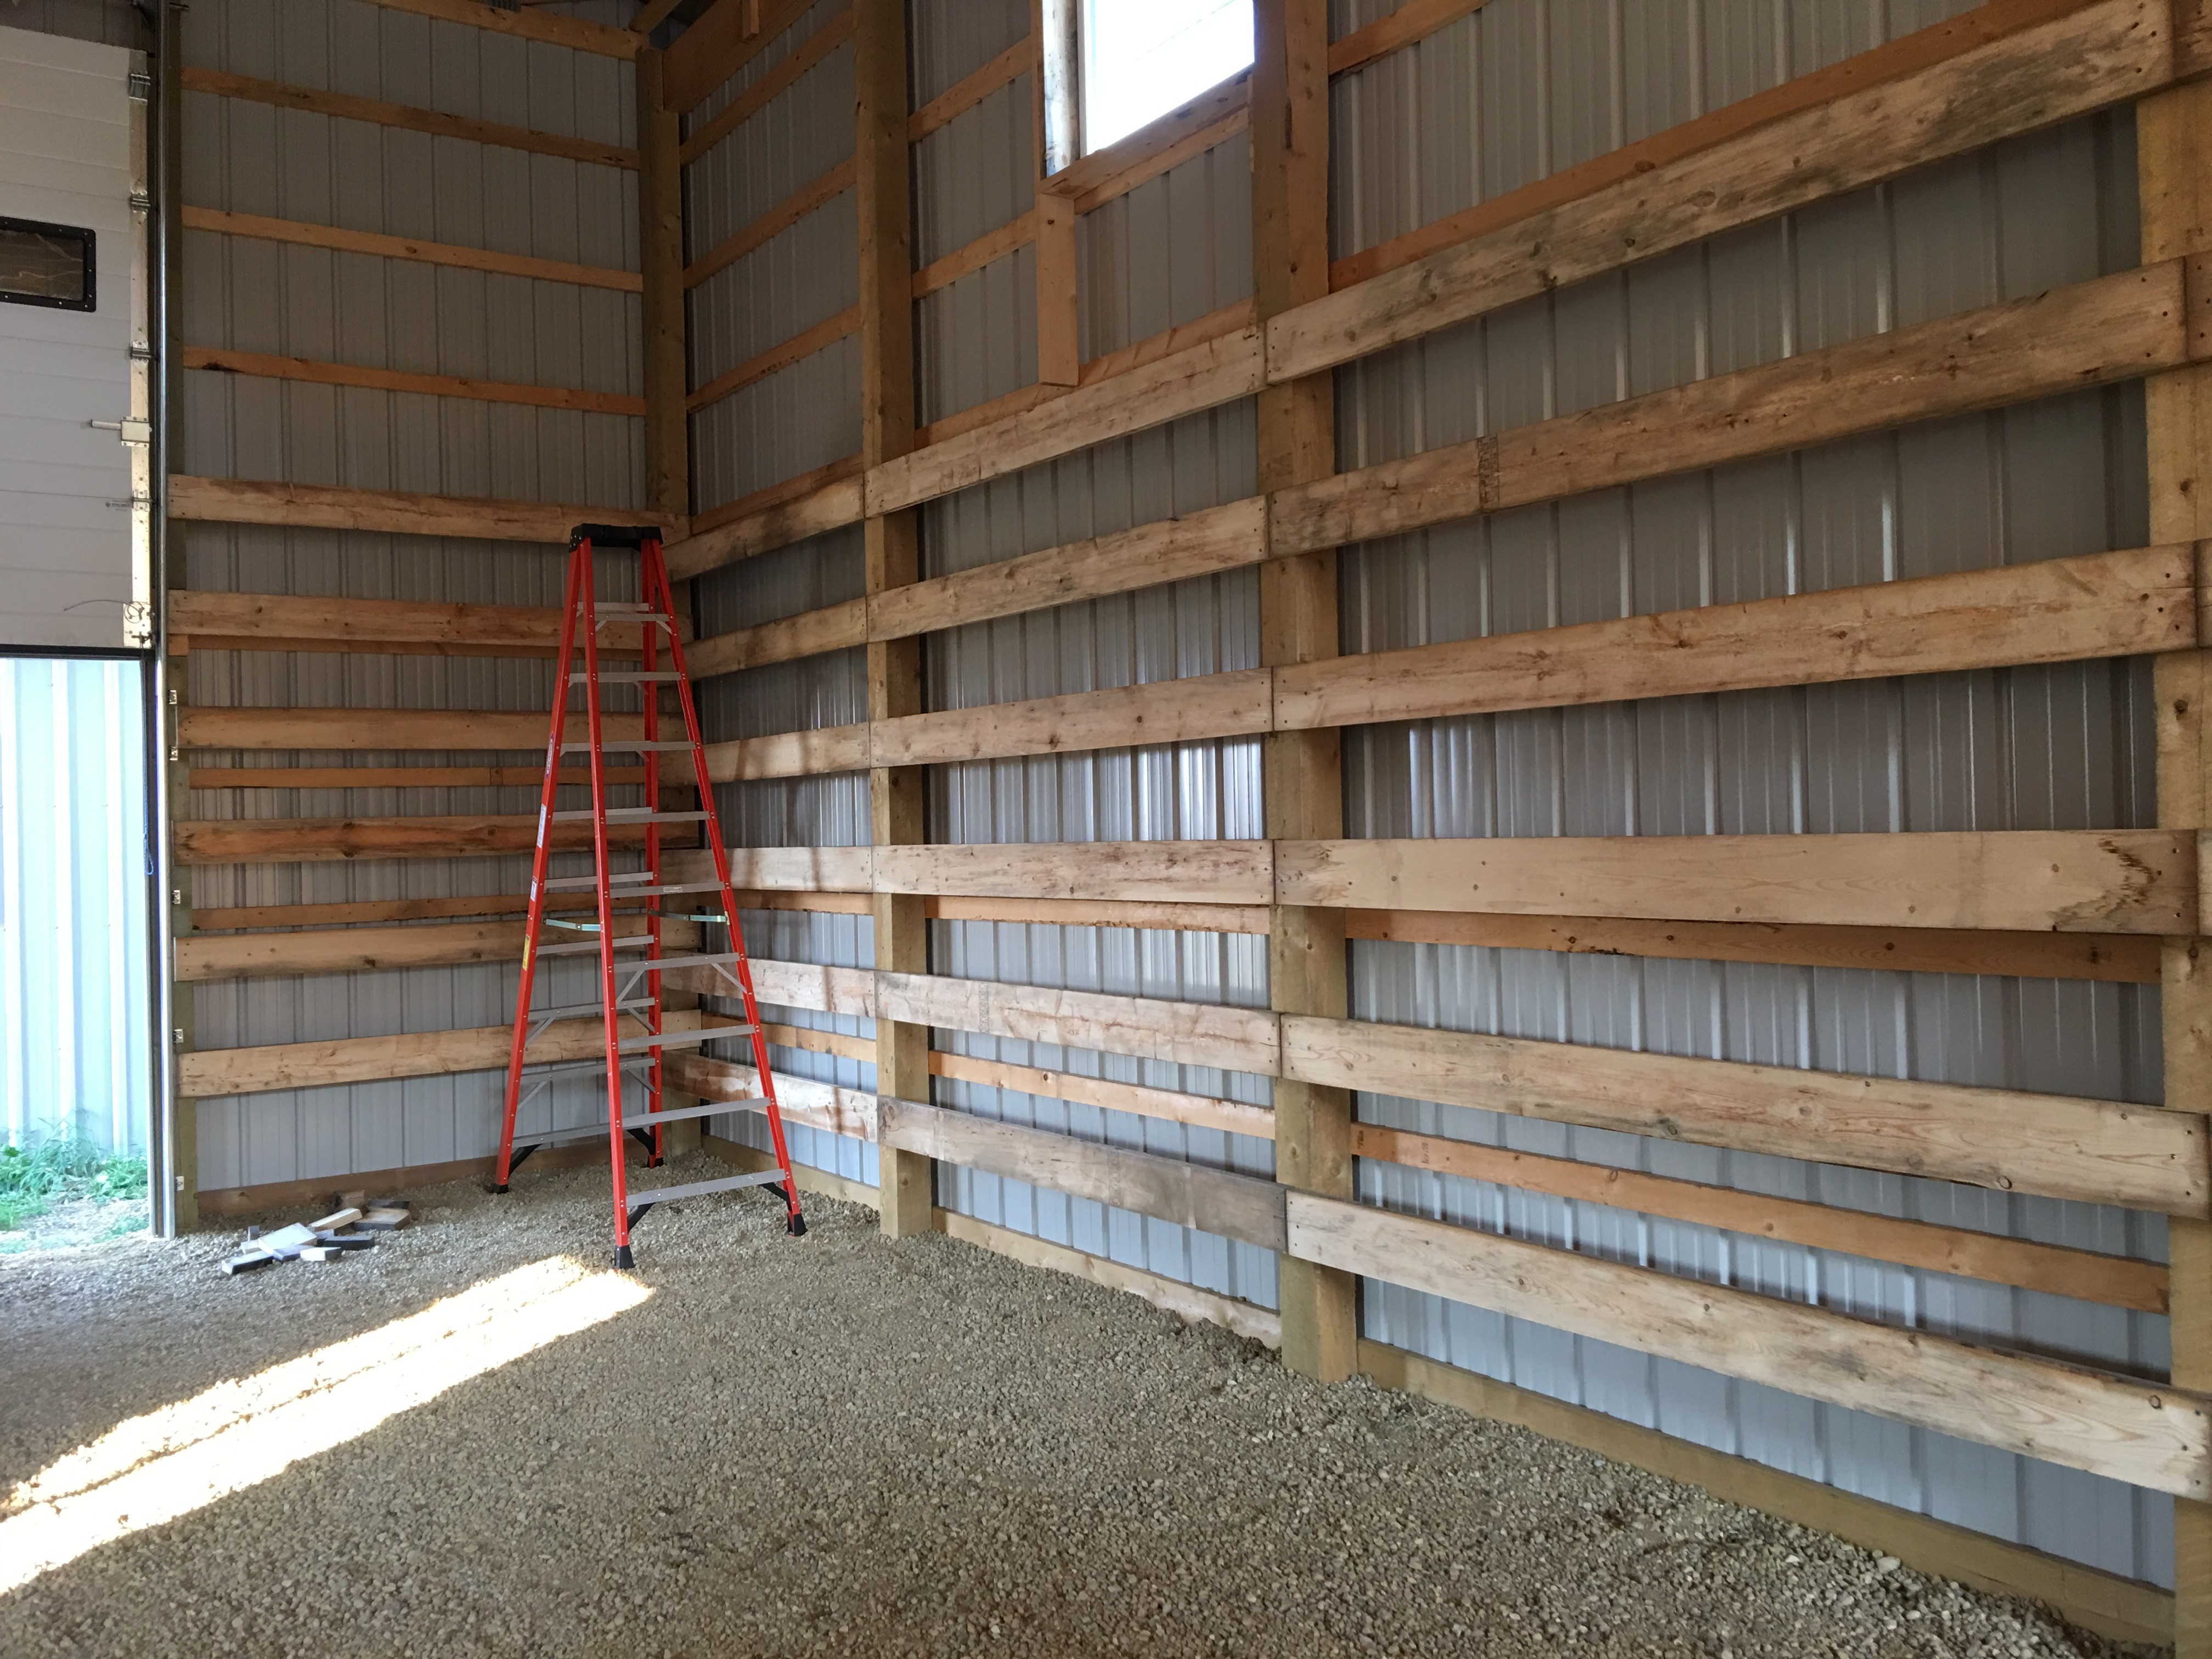 Click image for larger version.  Name:Hay shed south side.JPG Views:10 Size:2.34 MB ID:432202